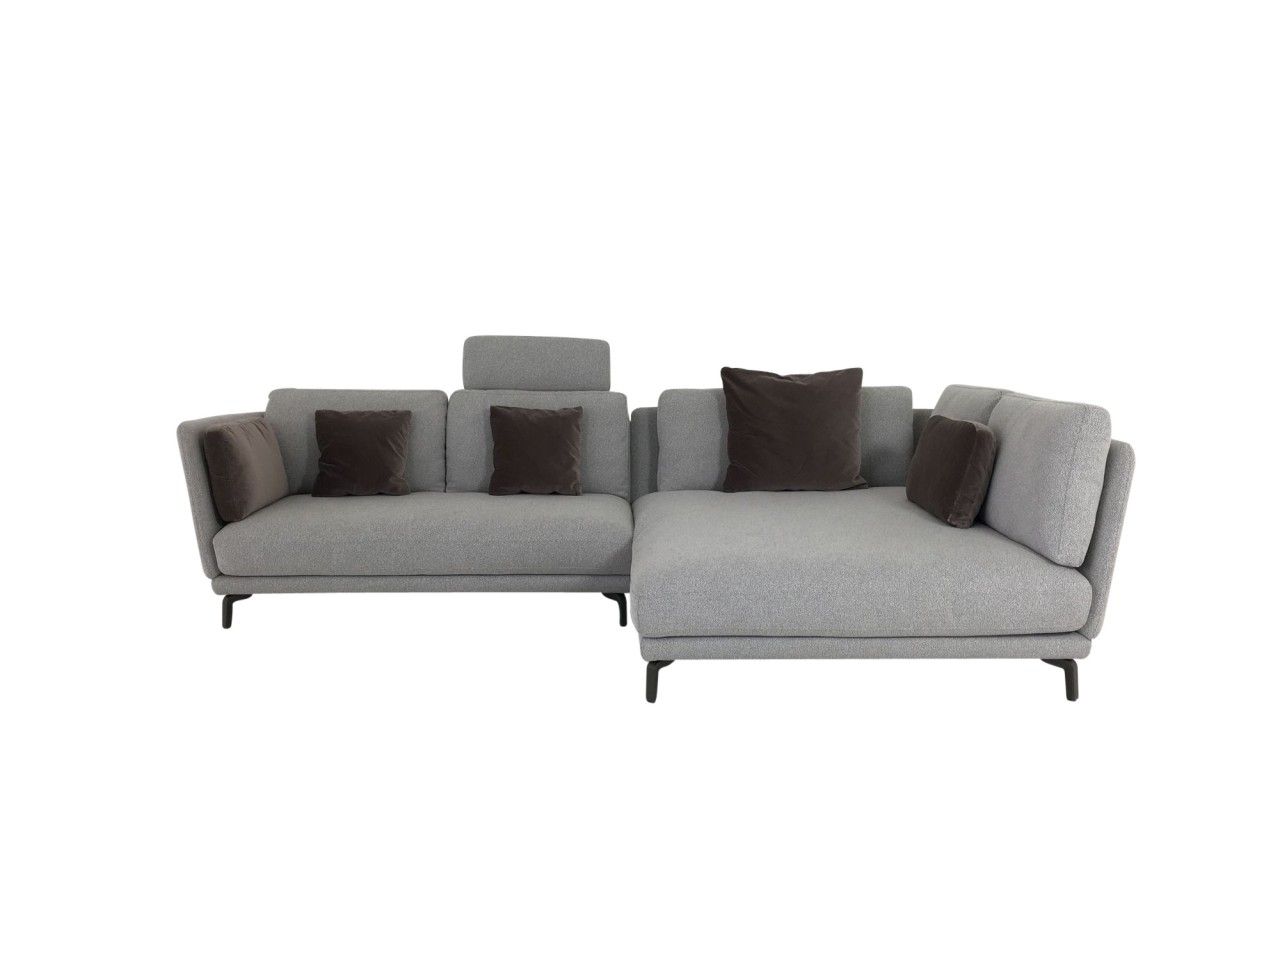 rolf benz rondo sofa mit xl recamiere in stoff grau lounge. Black Bedroom Furniture Sets. Home Design Ideas